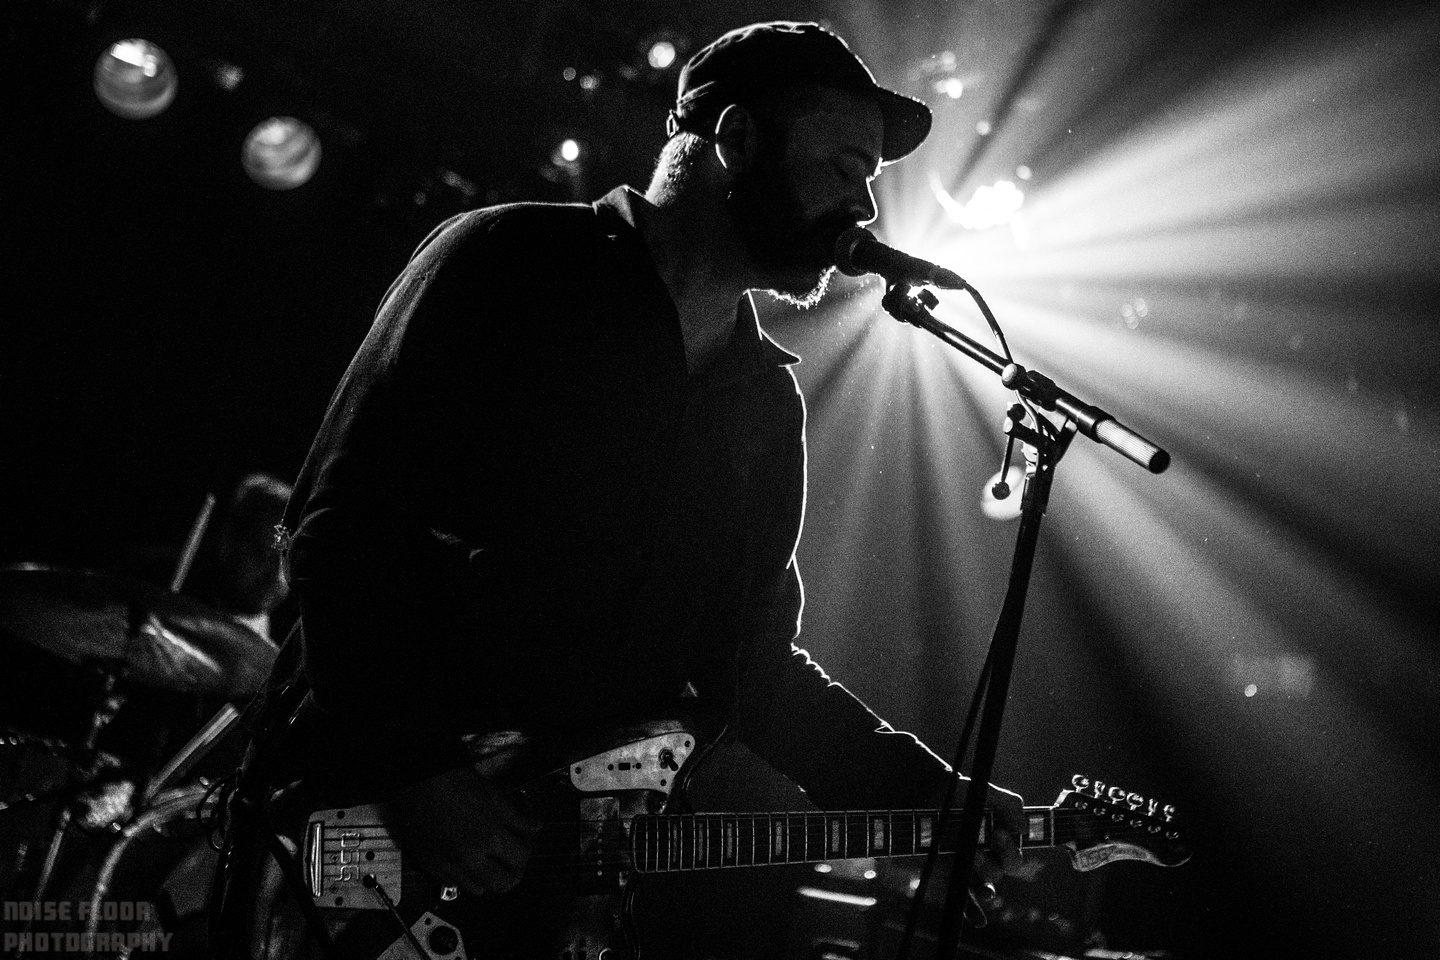 Noise Floor Photography: 2019/03/27 - Swervedriver / Failure &emdash;